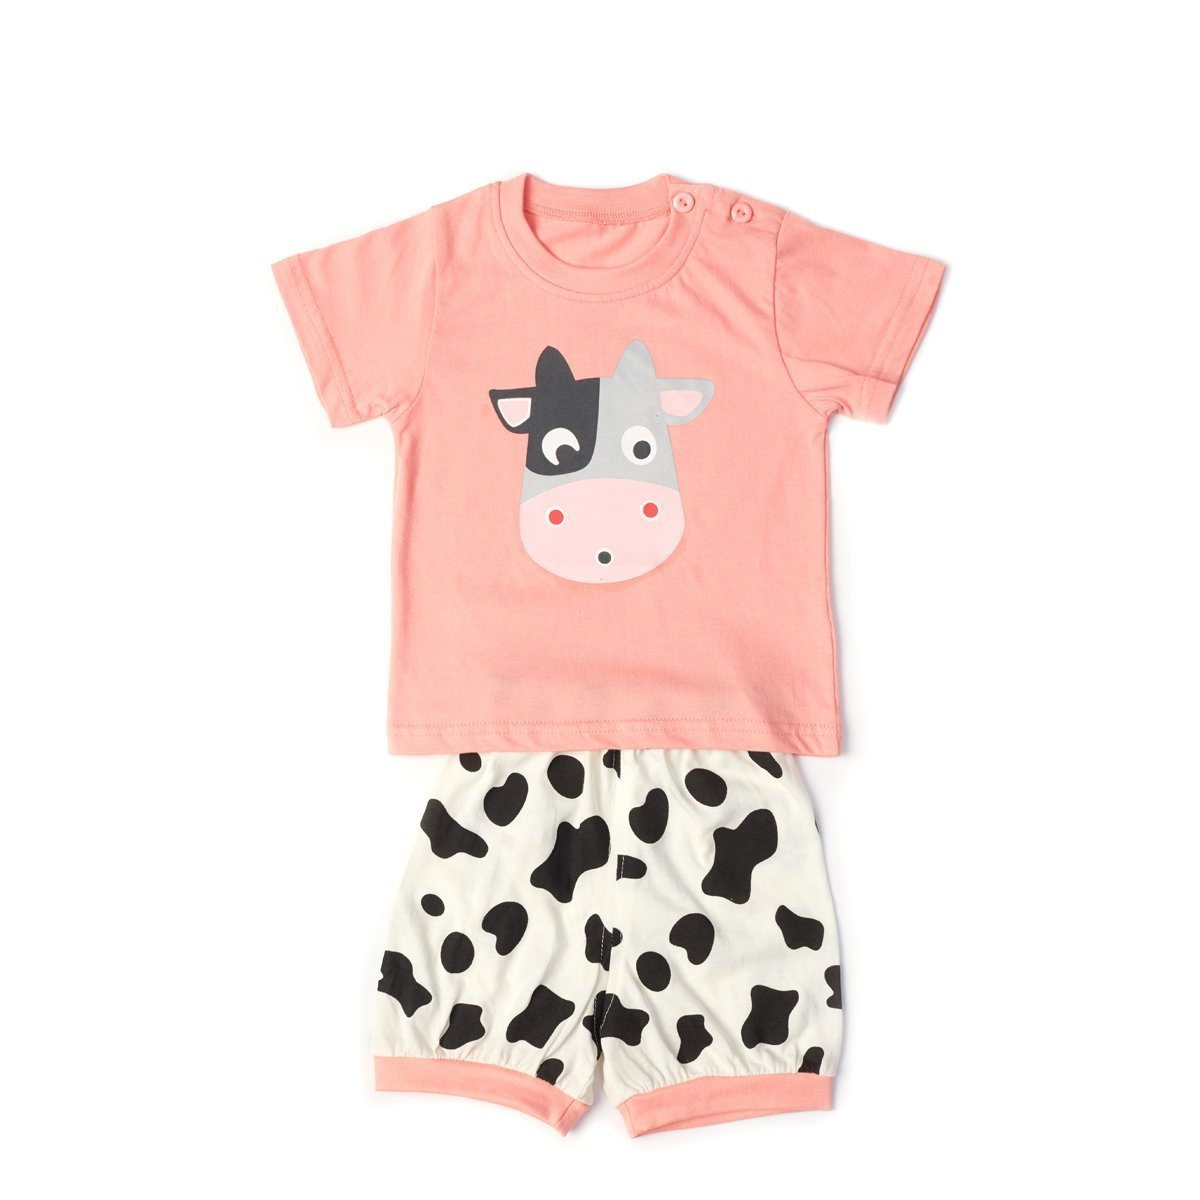 Baby Clothes Sets Infant Outifts Toddler Short Sleeve Shirt + Pants Animals Dows (Summer) (12-18 Months)